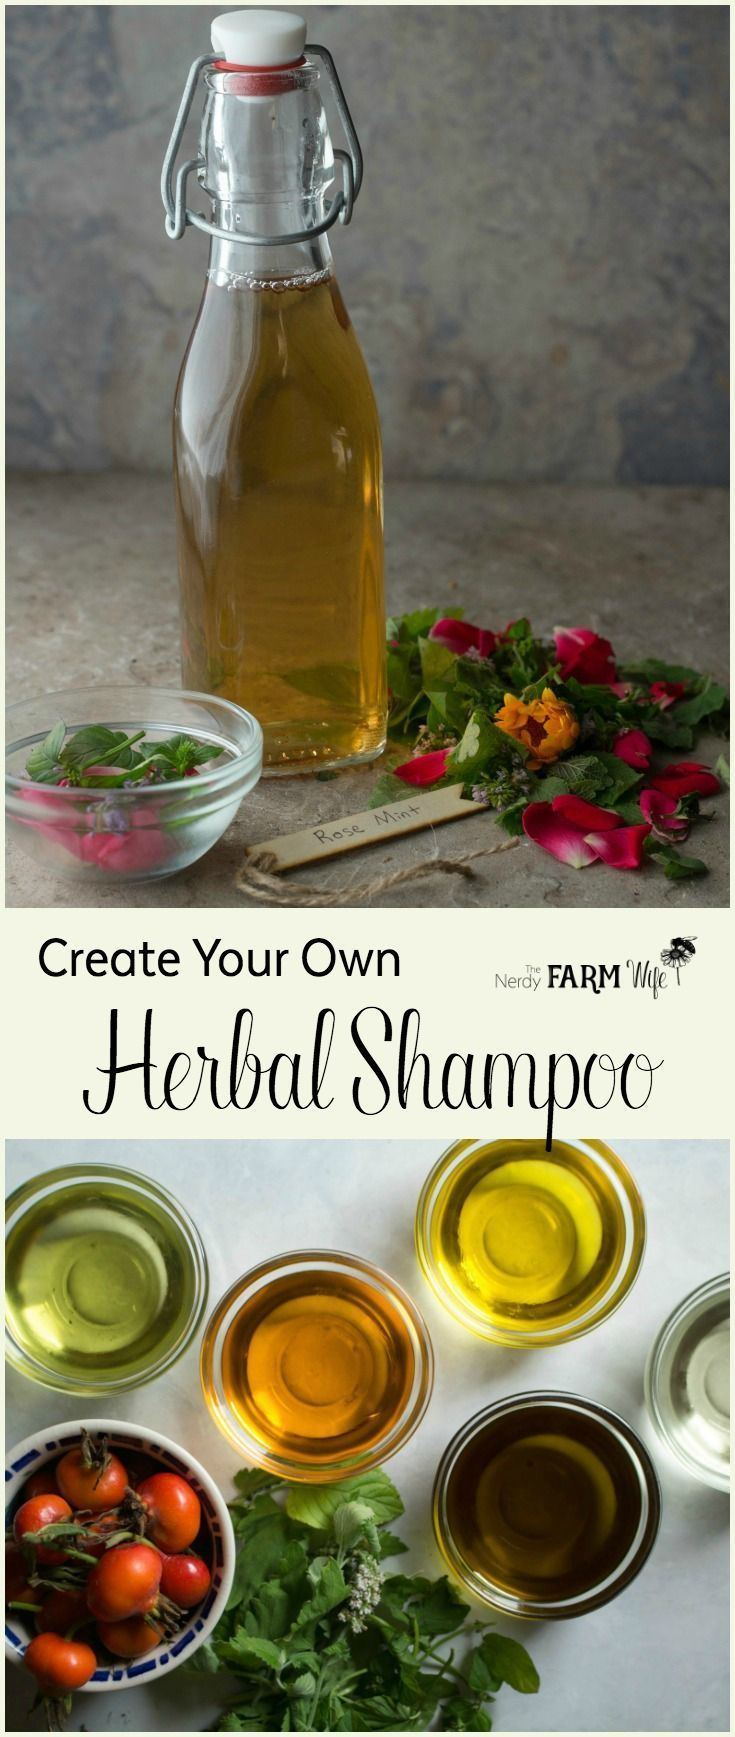 Diy Haarkur Homemade Herbal Shampoo Herbs Diy Haarkur Haare Pflegen Og